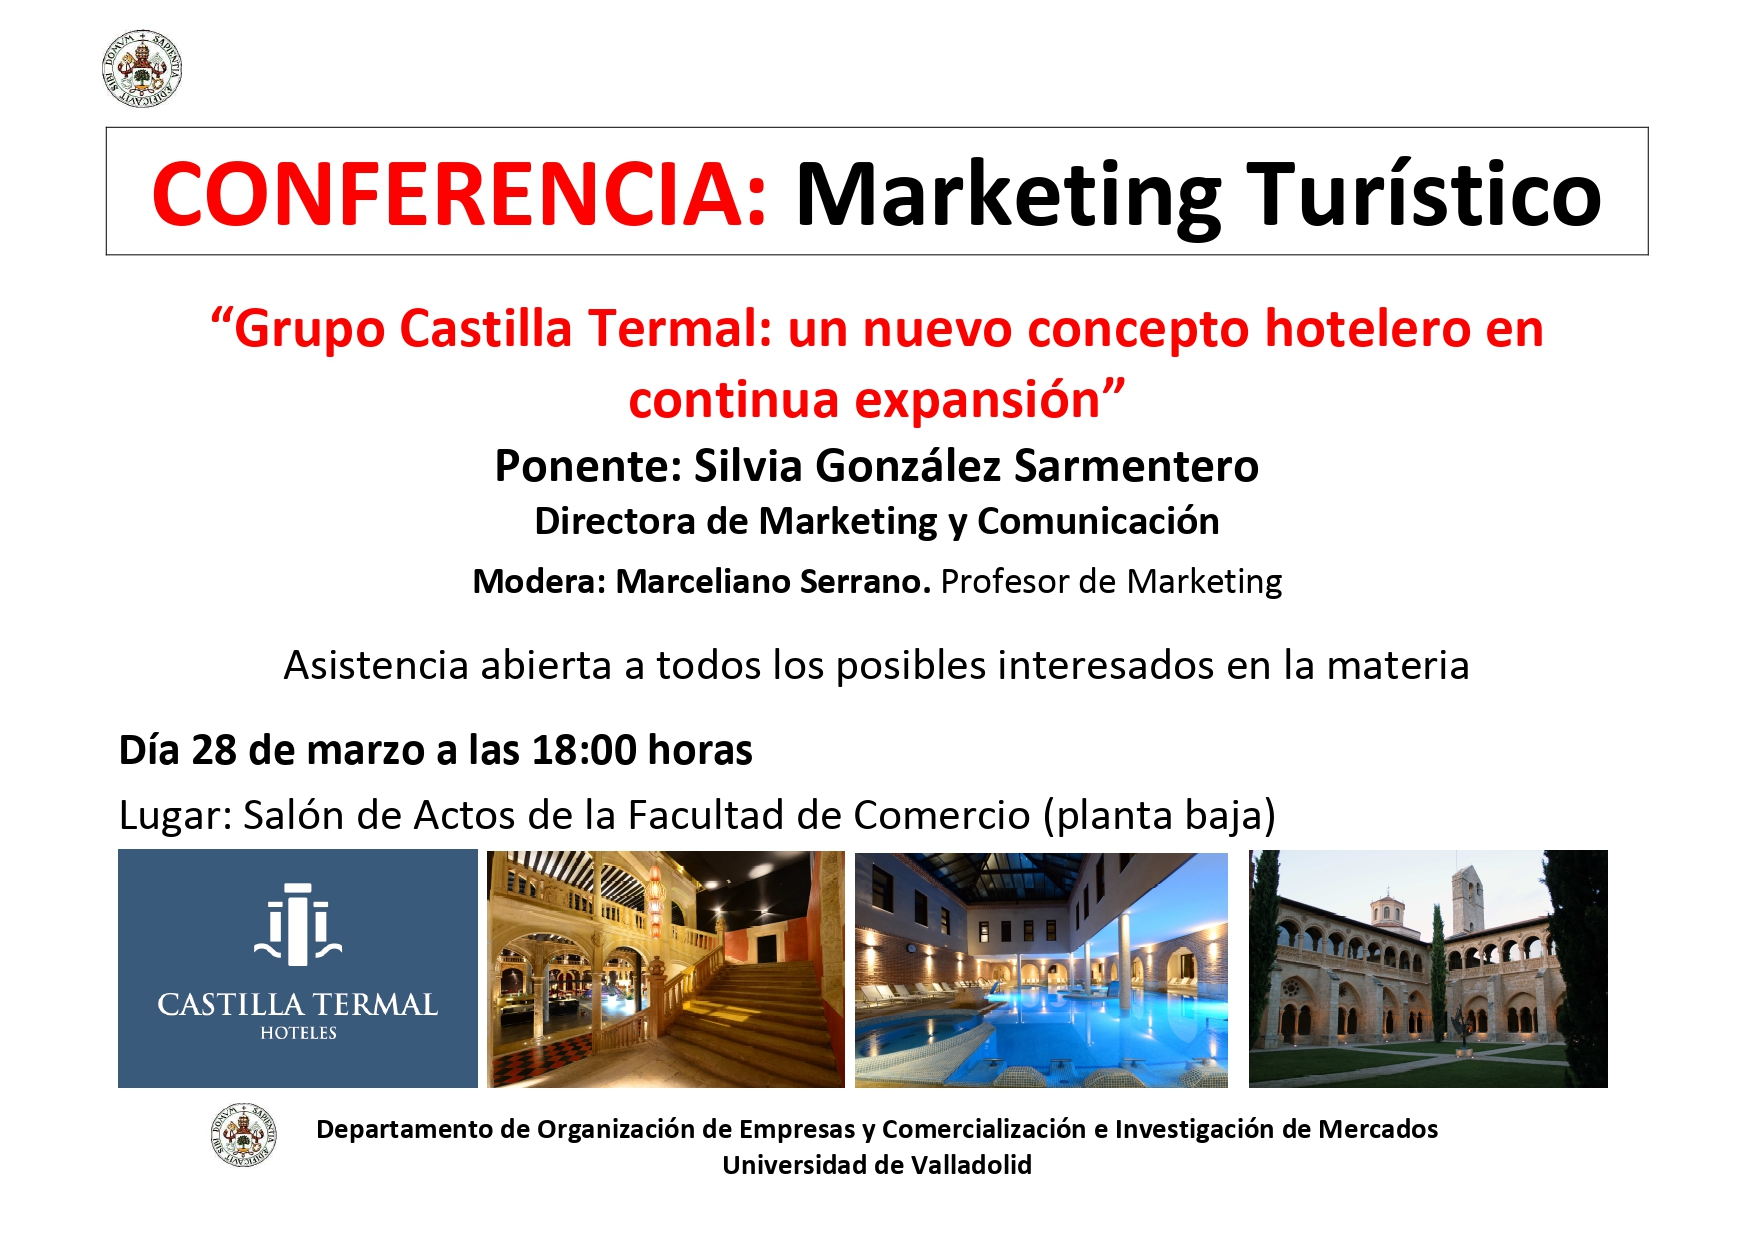 Conferencia: Marketing Turístico